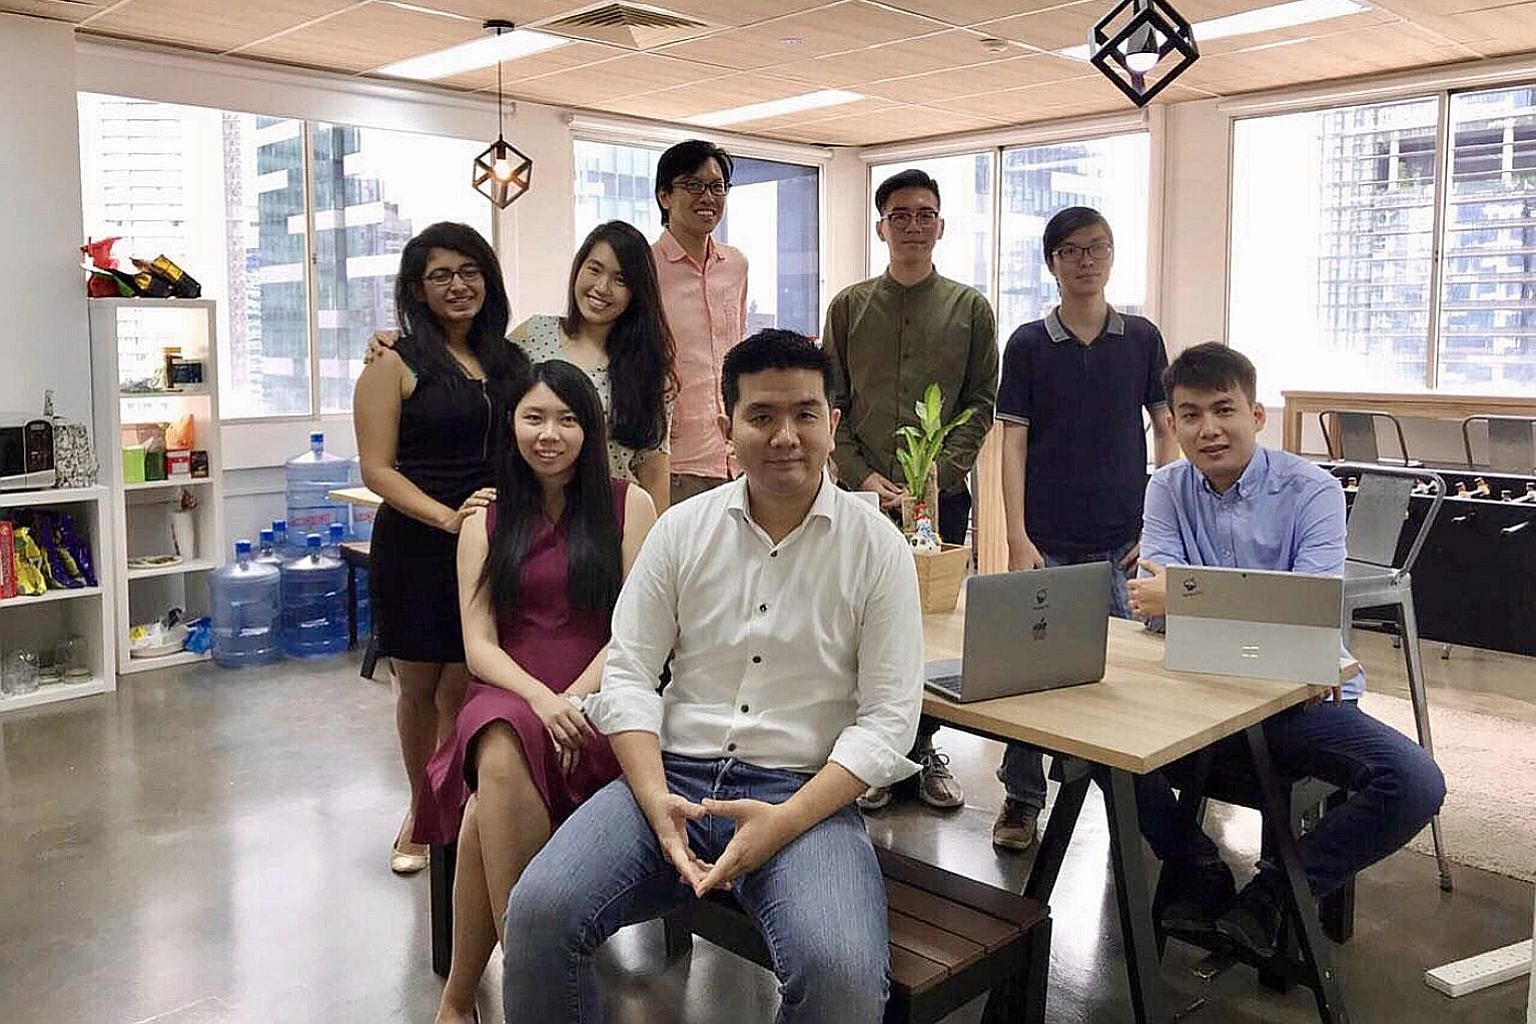 Mr Wong Hong Ting (in white), founder of artificial intelligence firm Botbot.ai, with his team. He says data-driven firms like his will face far greater technical challenges if the free flow of data across borders is restricted.